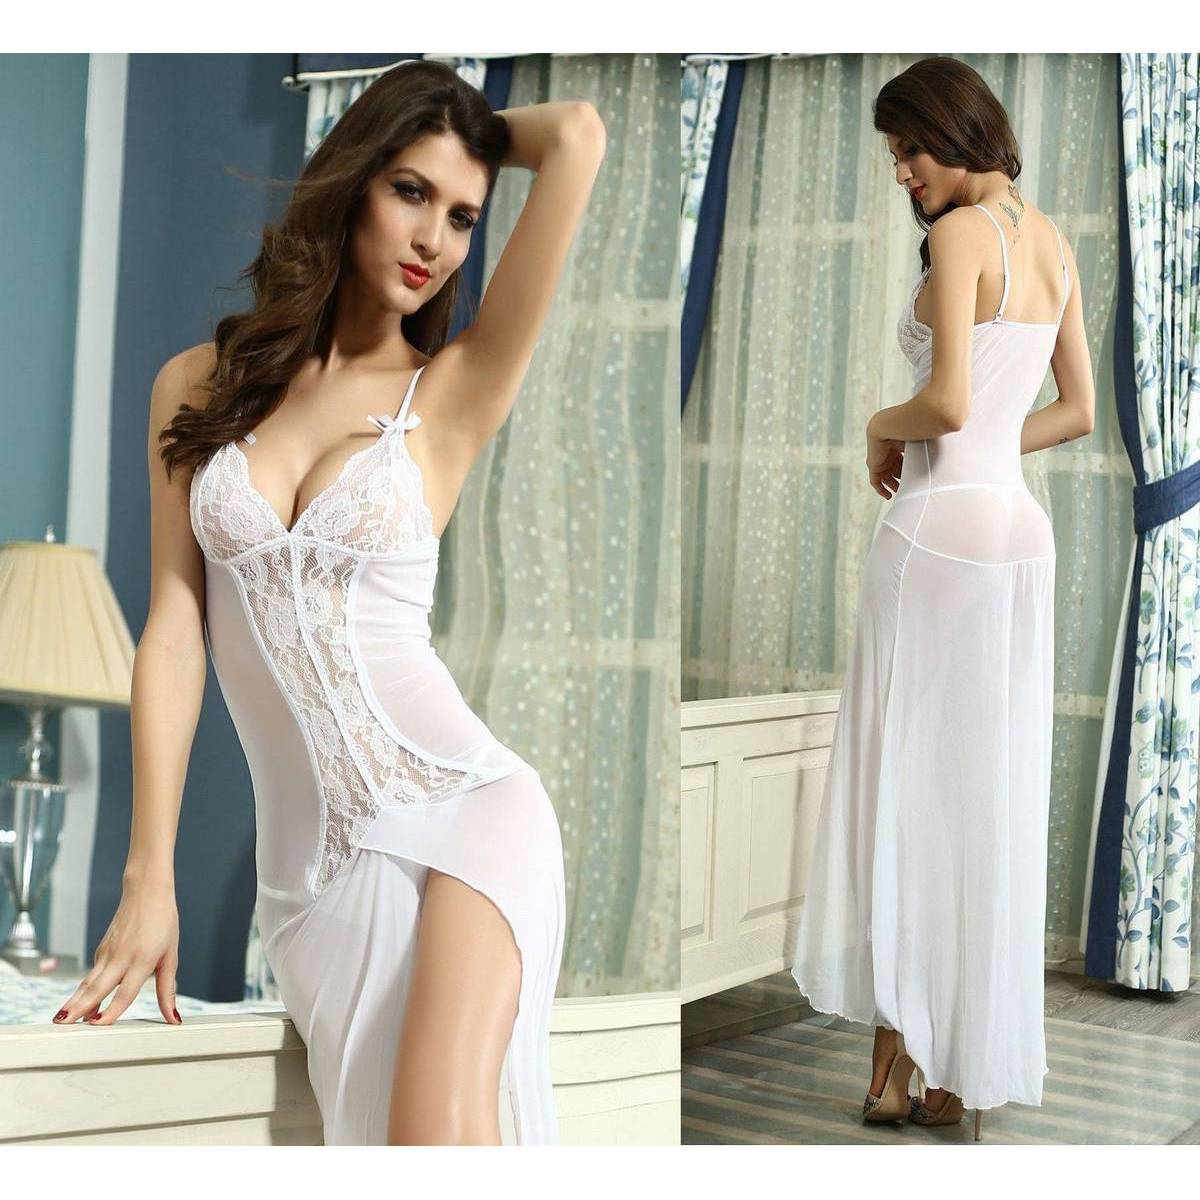 Sexy Transparent Lace Lingerie Hot Baby doll Chemise Night Dress Underwear Nightwear Costume Intimates